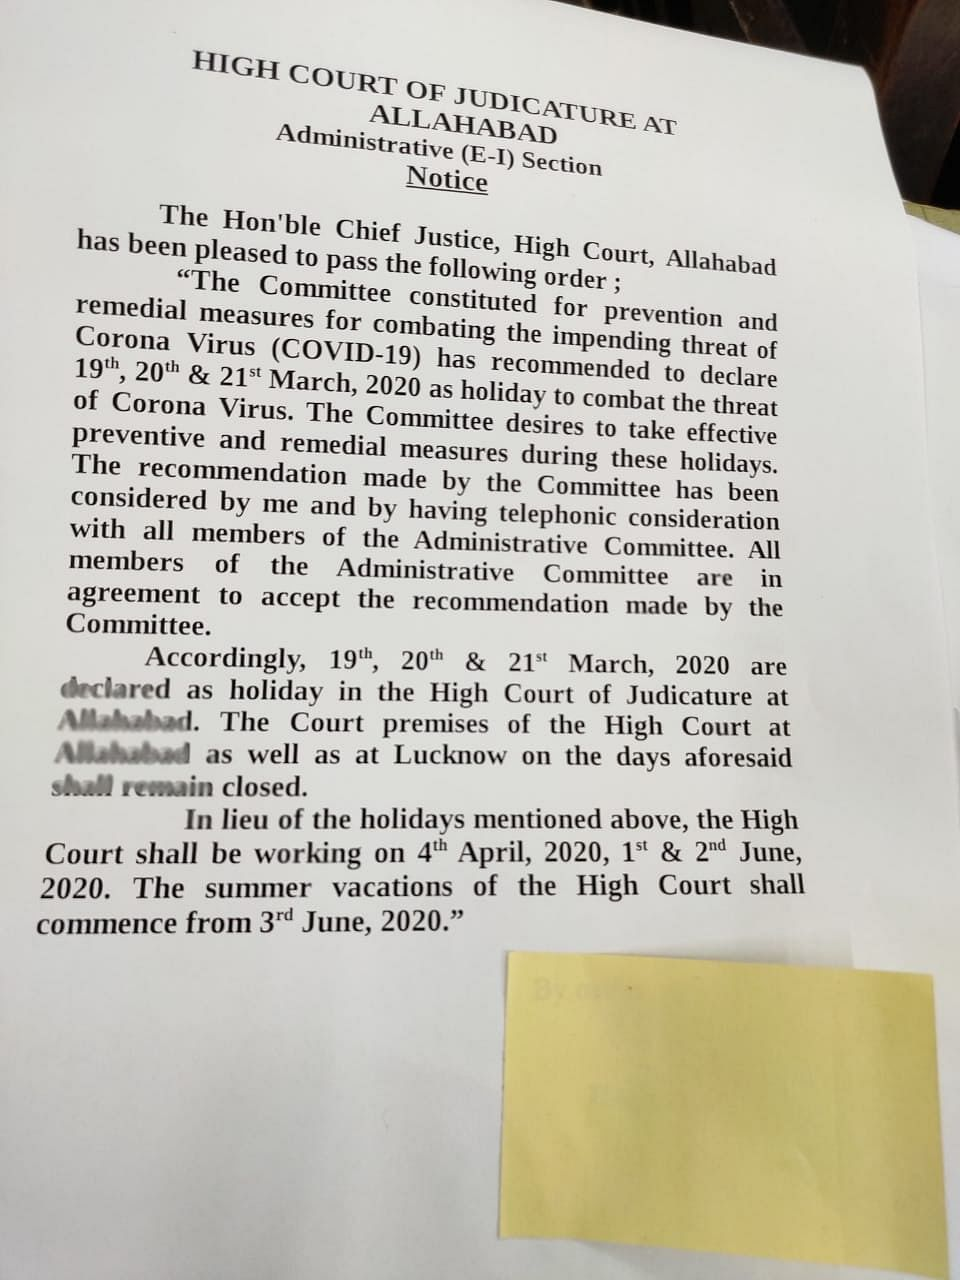 Notice issued by the Allahabad High Court